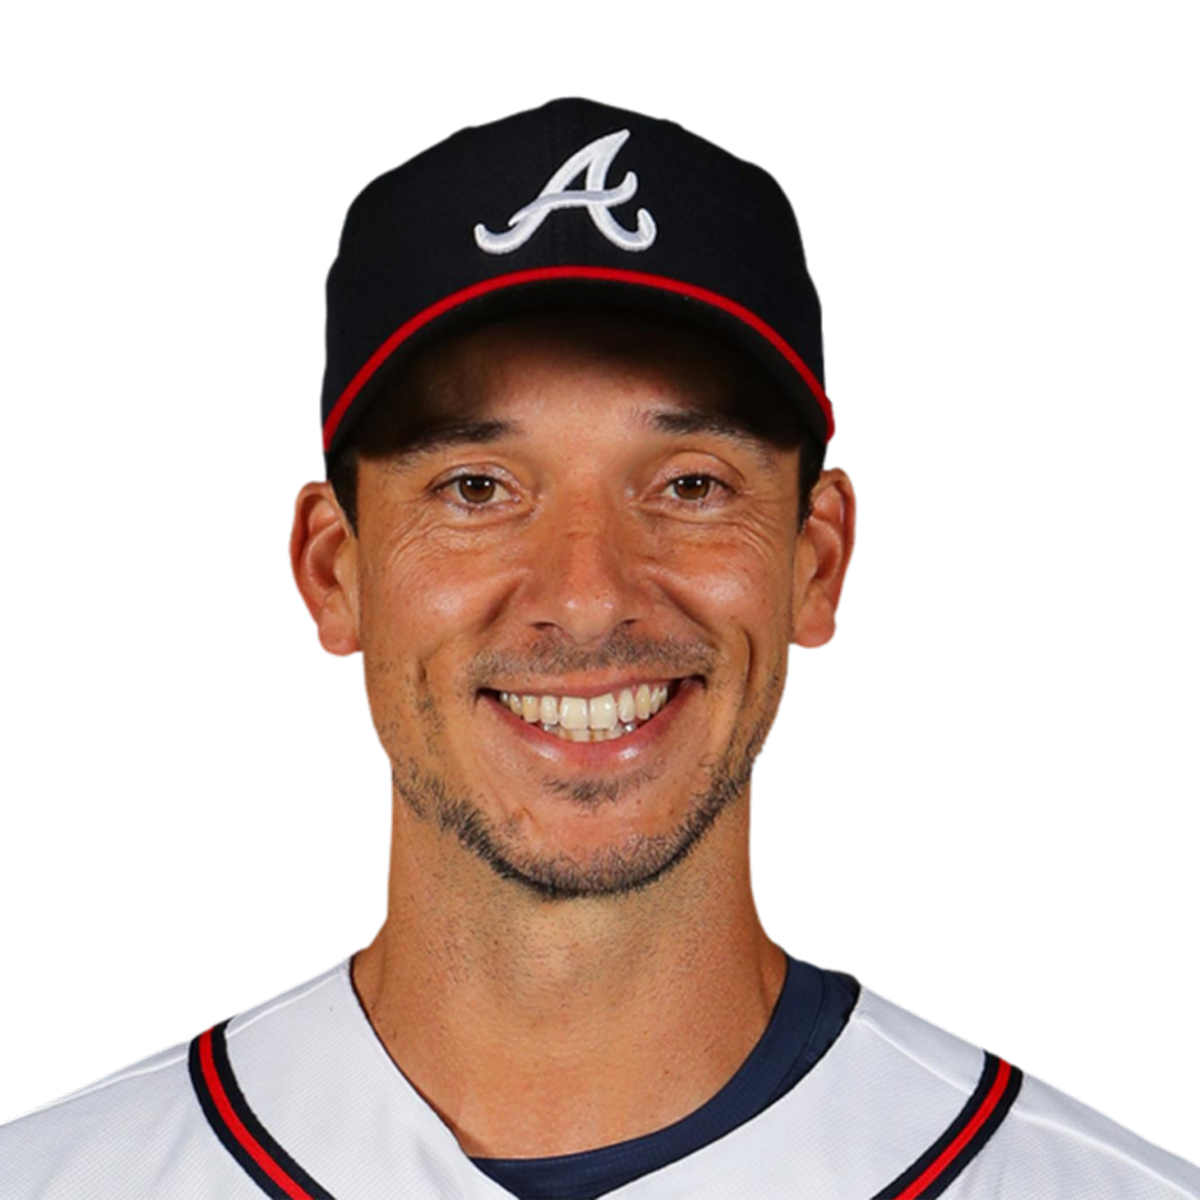 charlie morton agrees to one year deal with atlanta braves charlie morton news fantasypros charlie morton agrees to one year deal